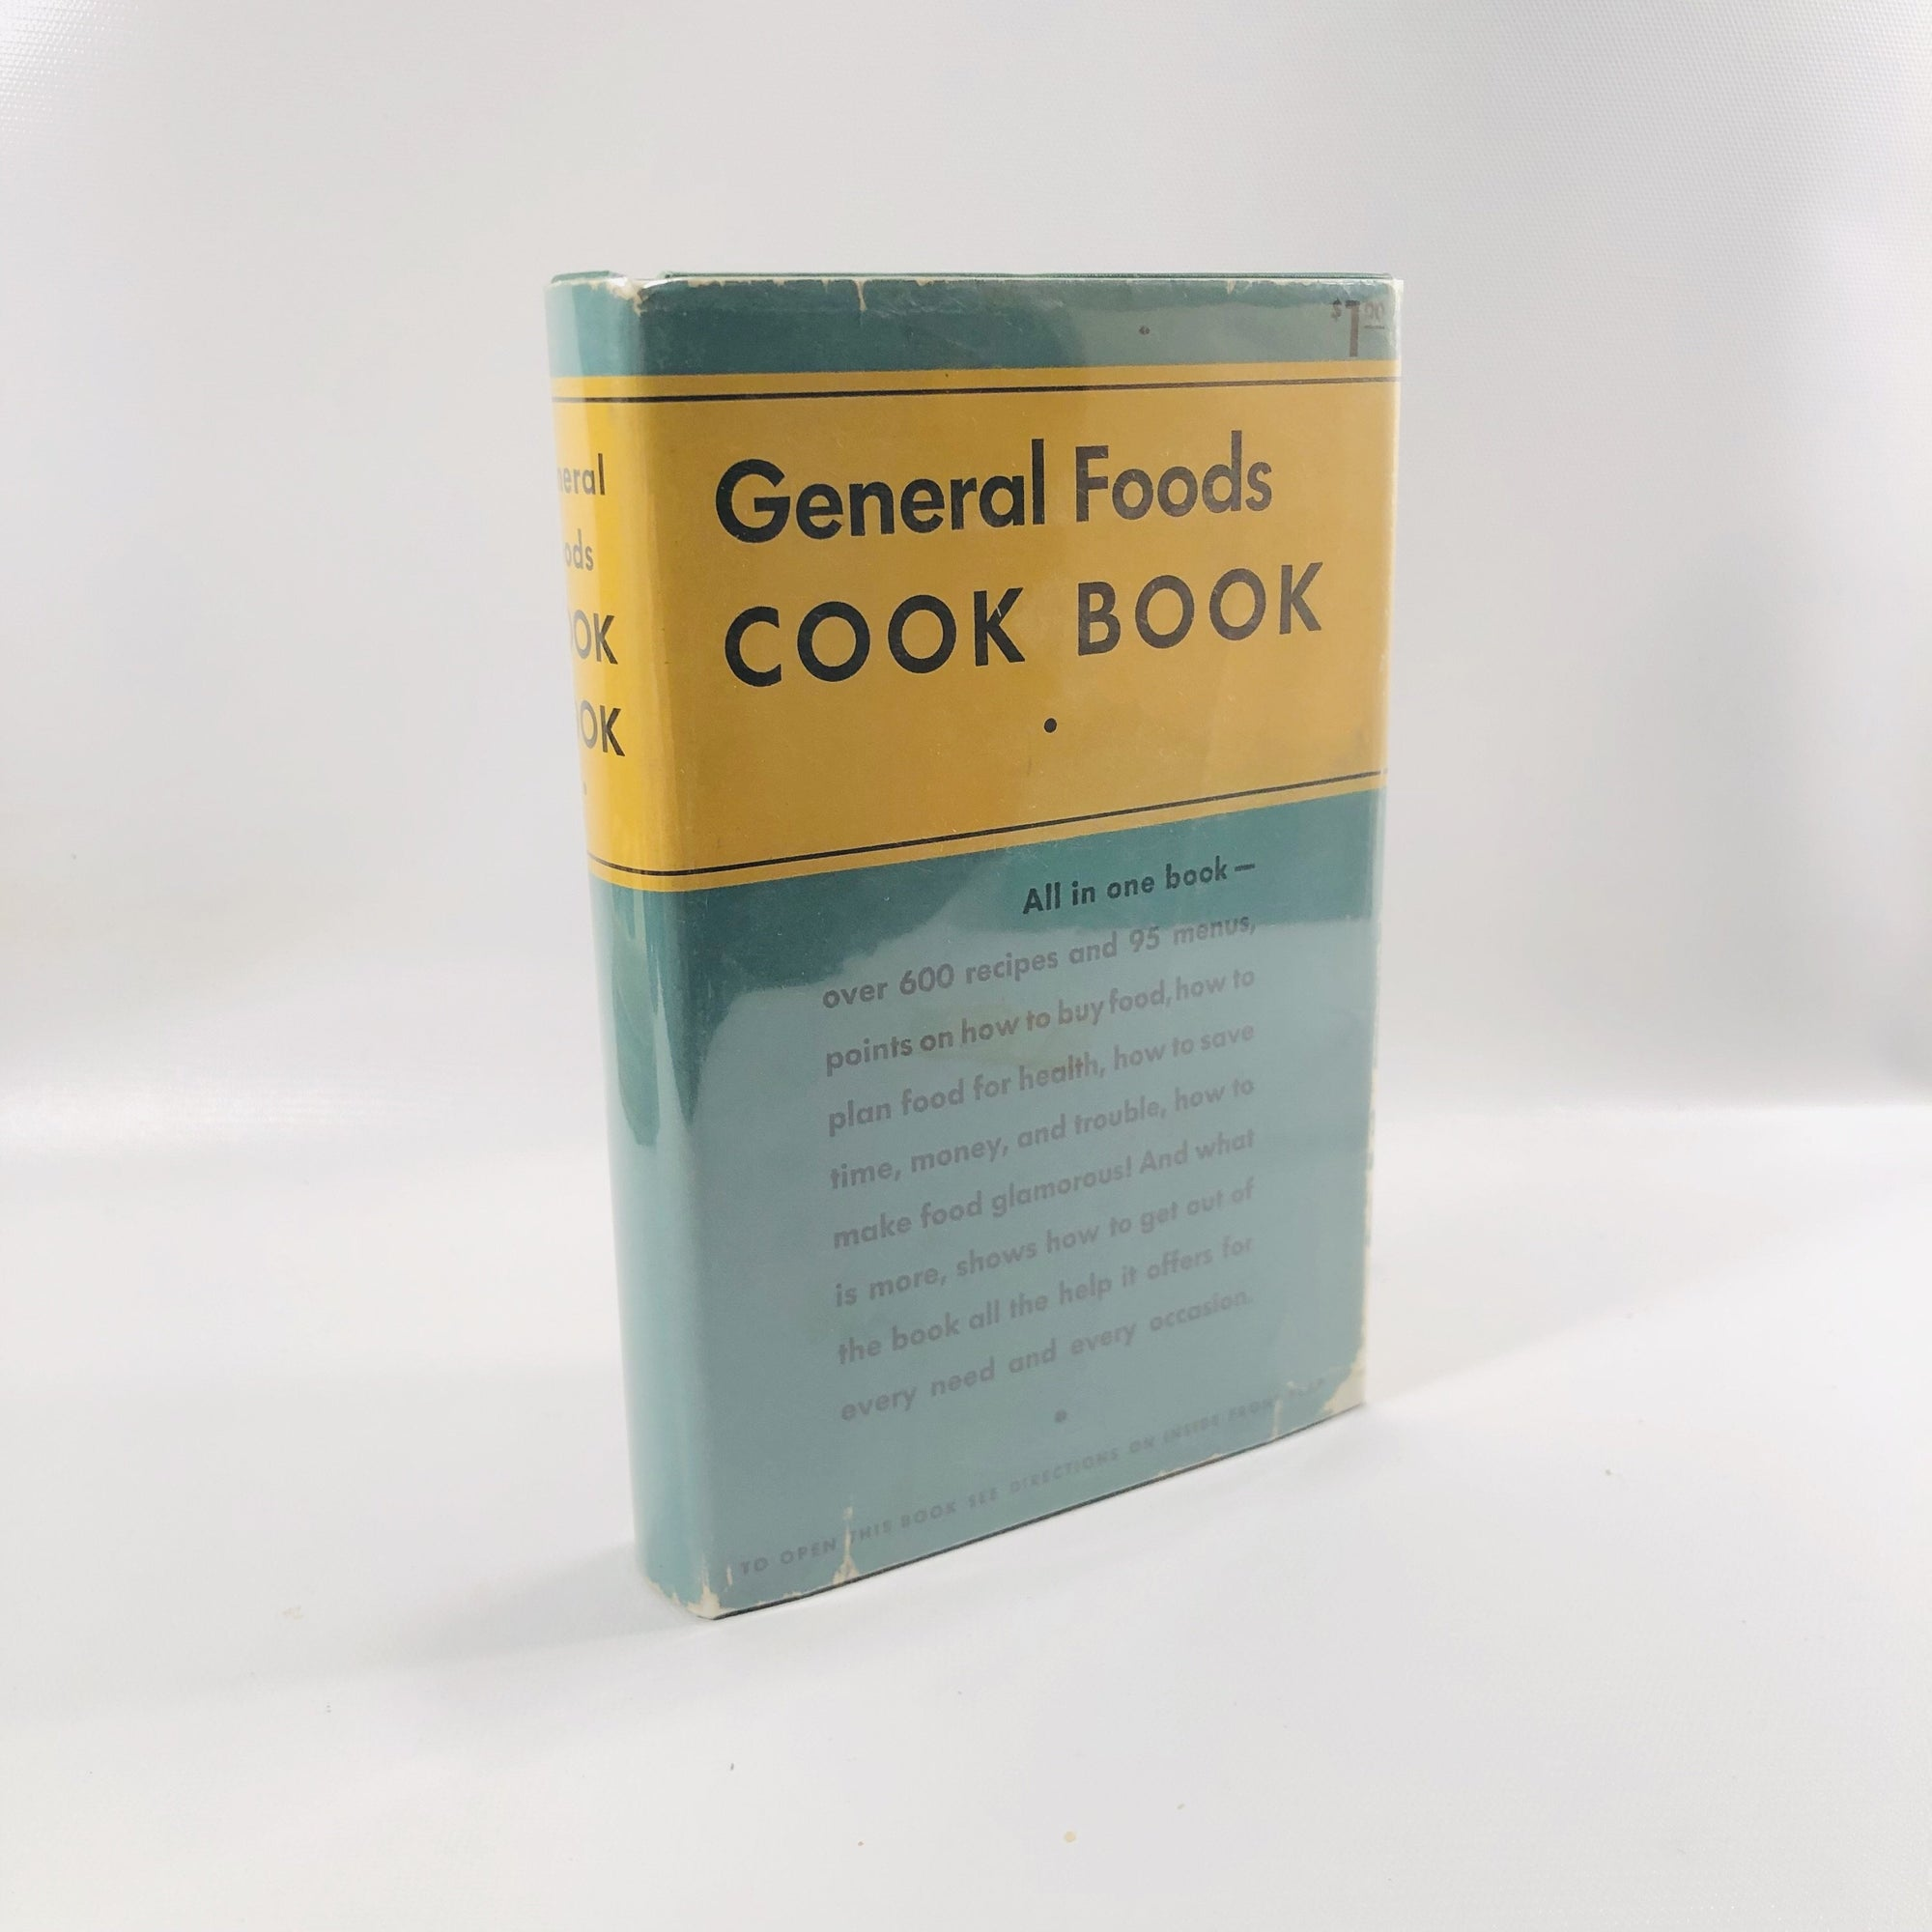 A Vintage Advertising Cookbook General Foods Cookbook by The General Foods Corporation 1935